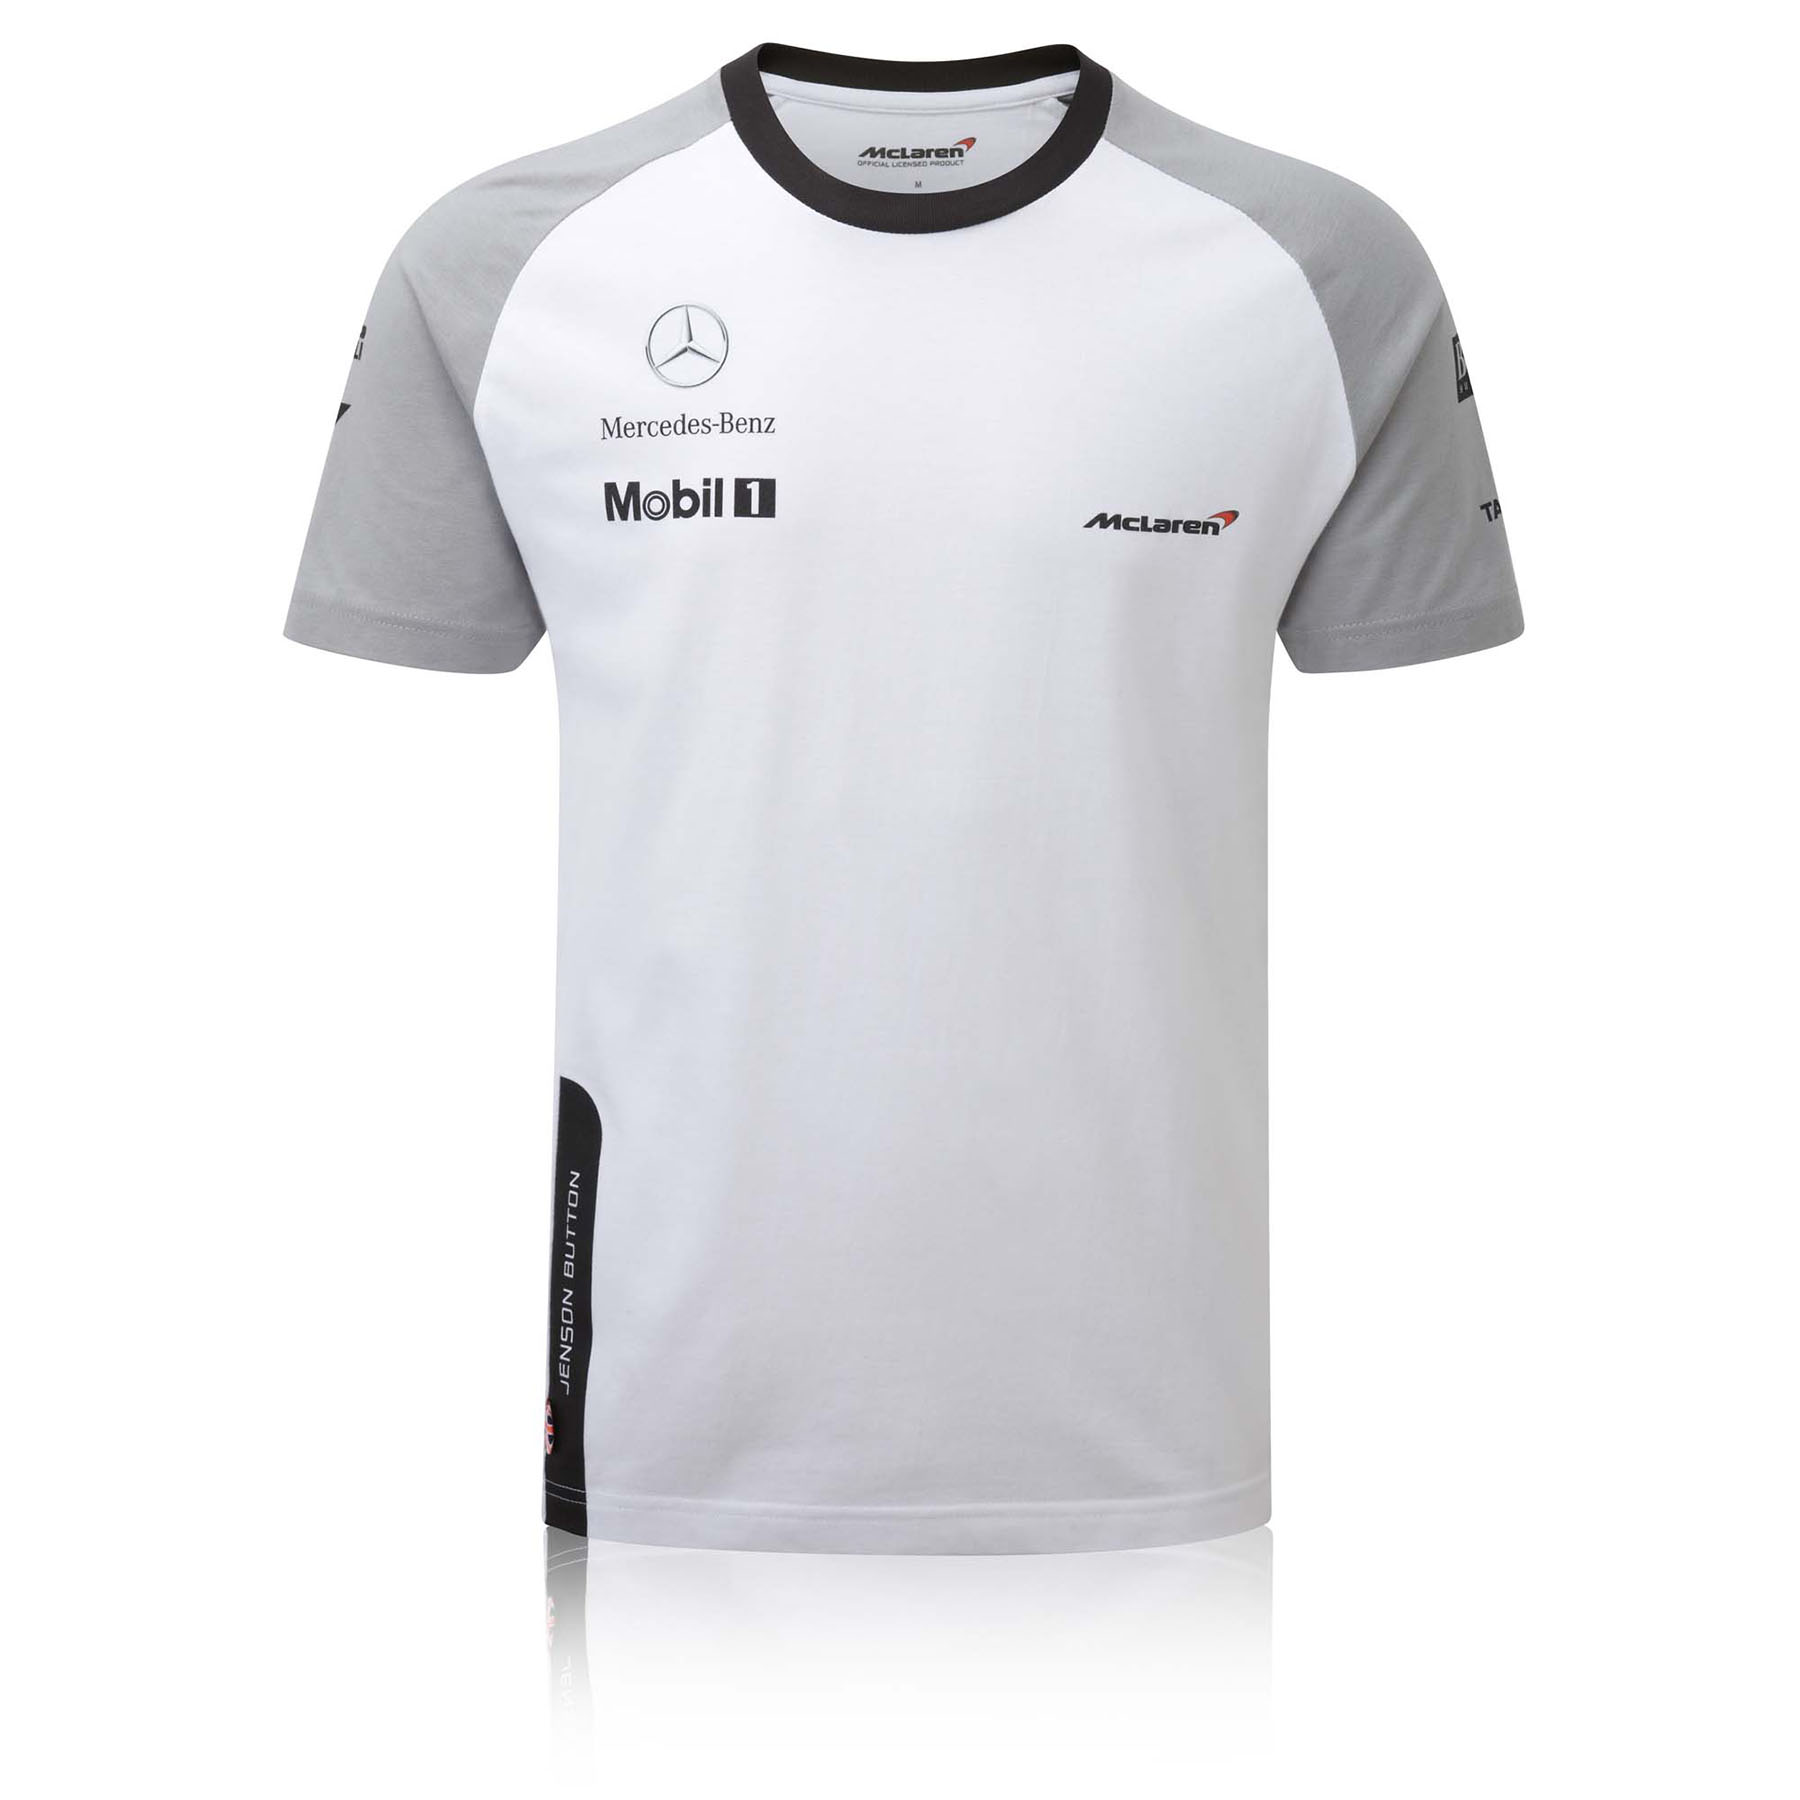 Team McLaren Button Cotton Team T-Shirt